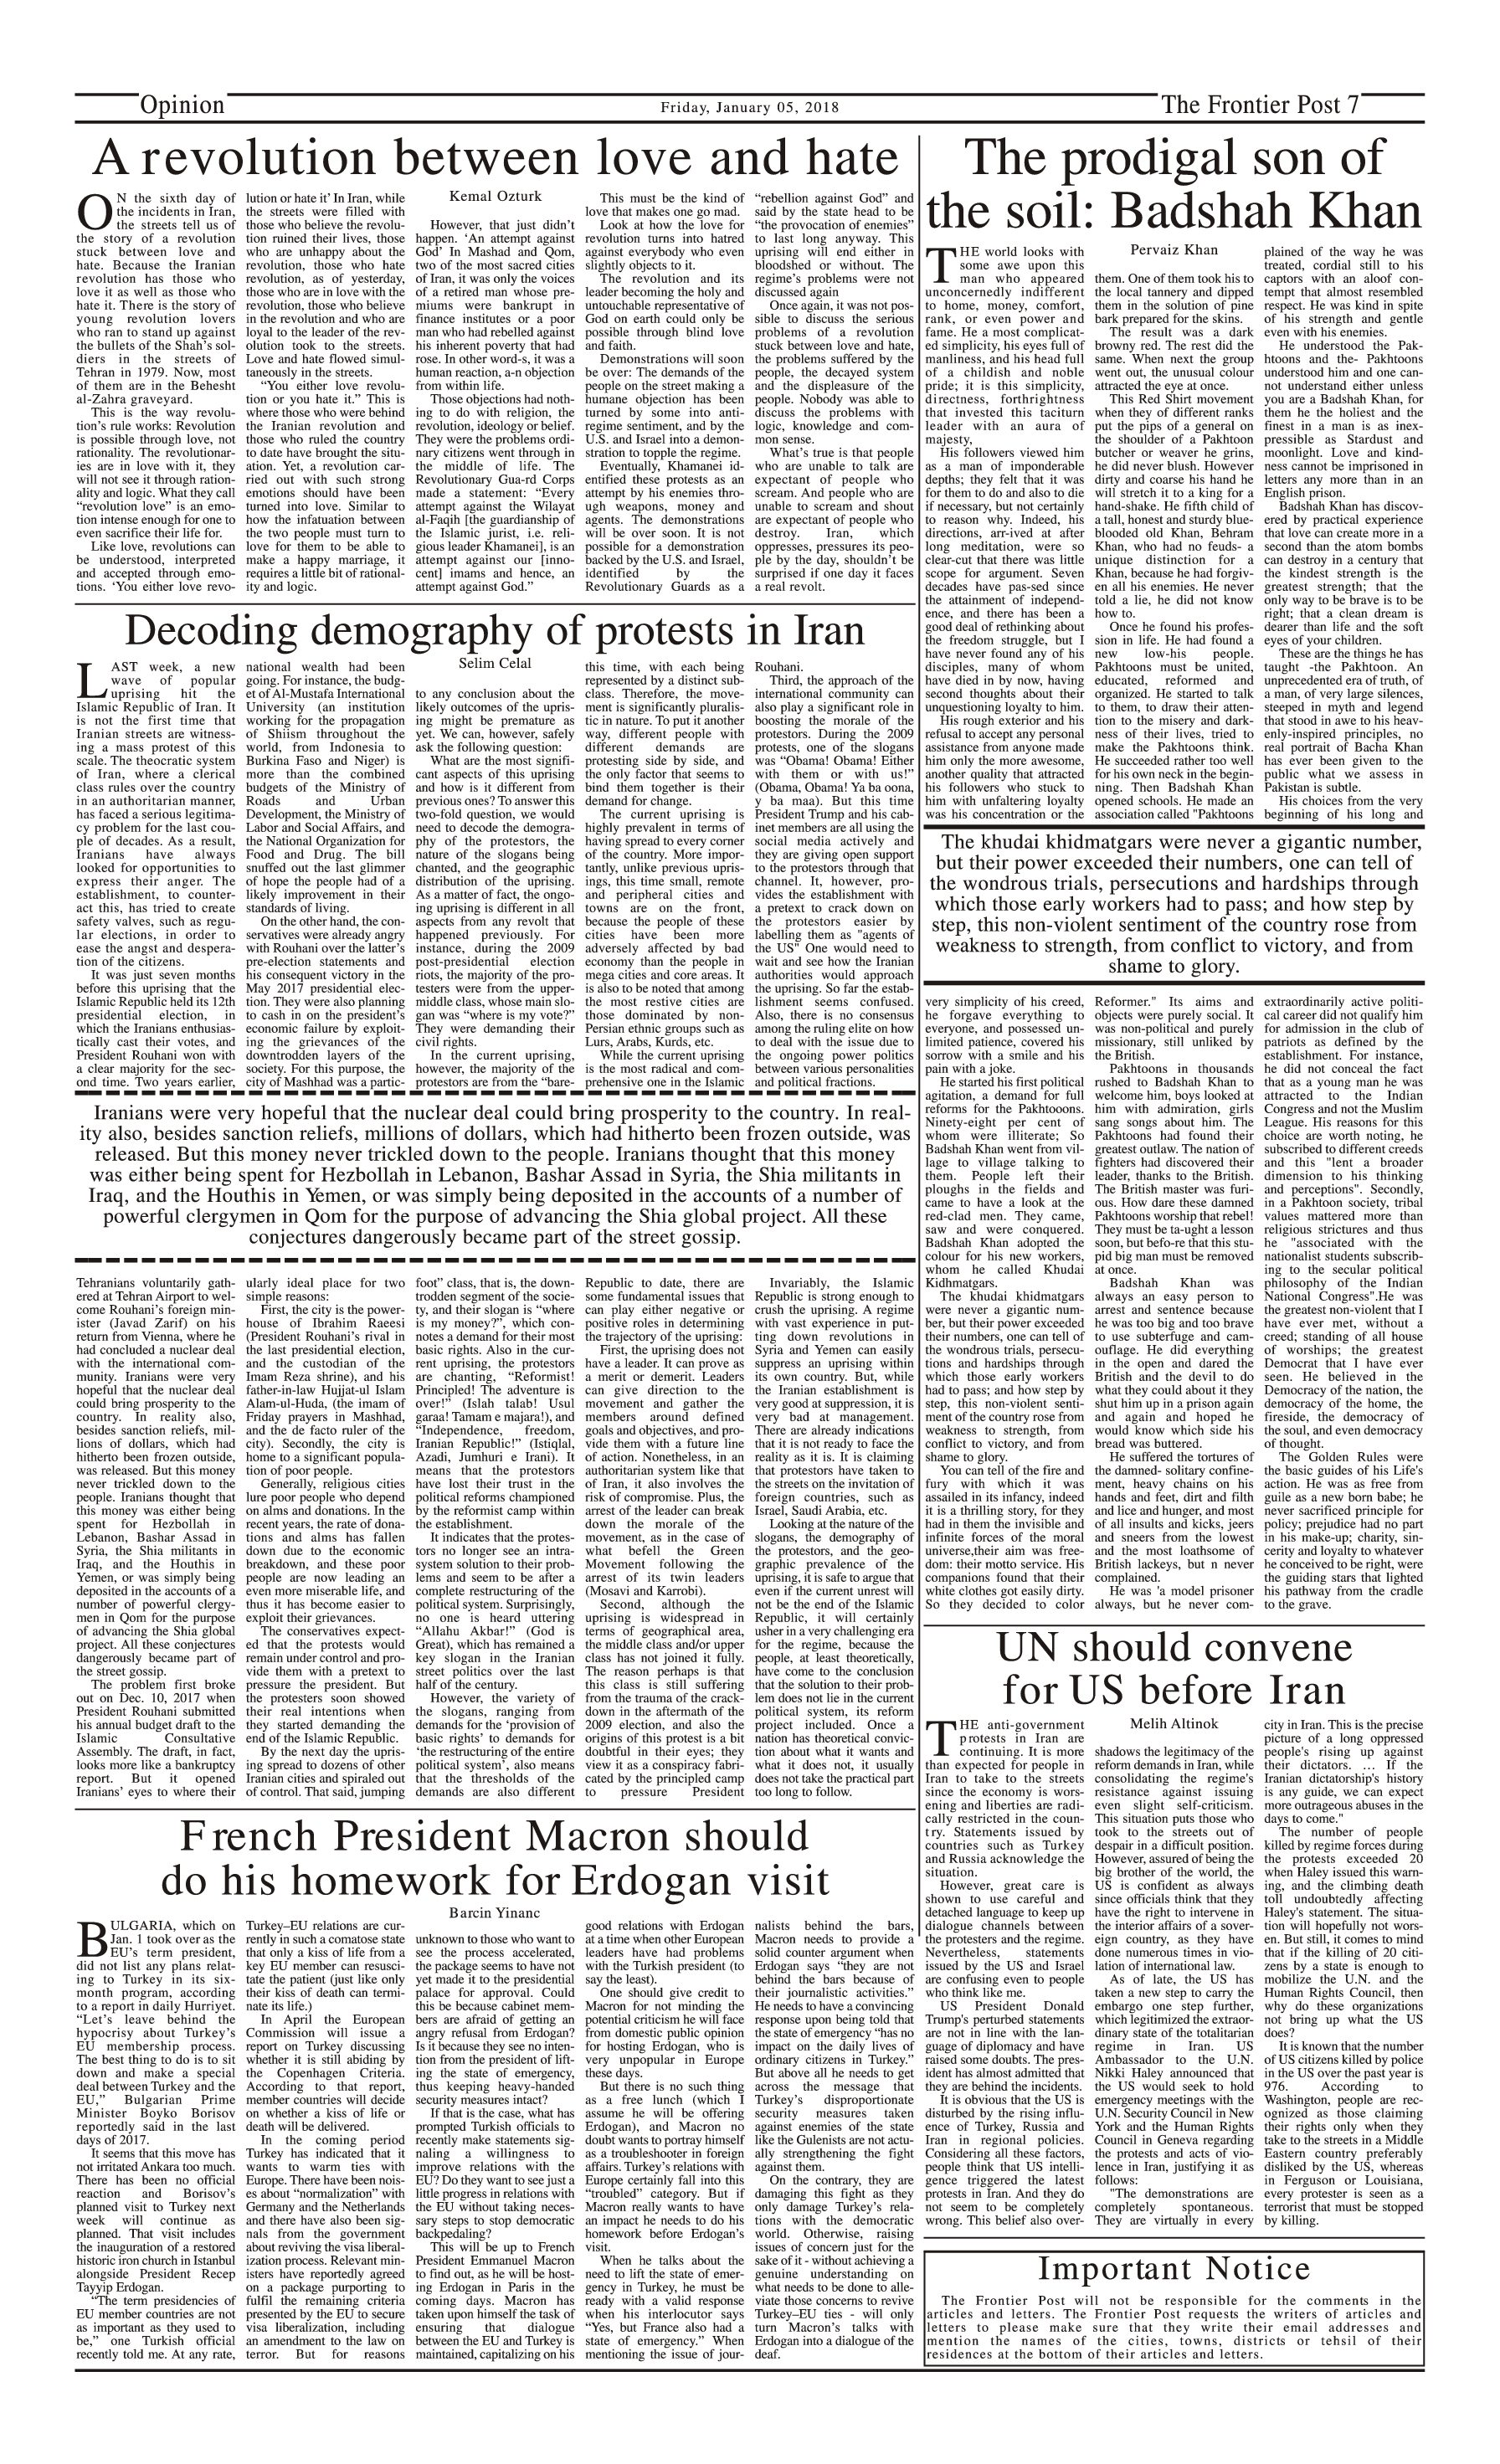 Opinion Page 5-1